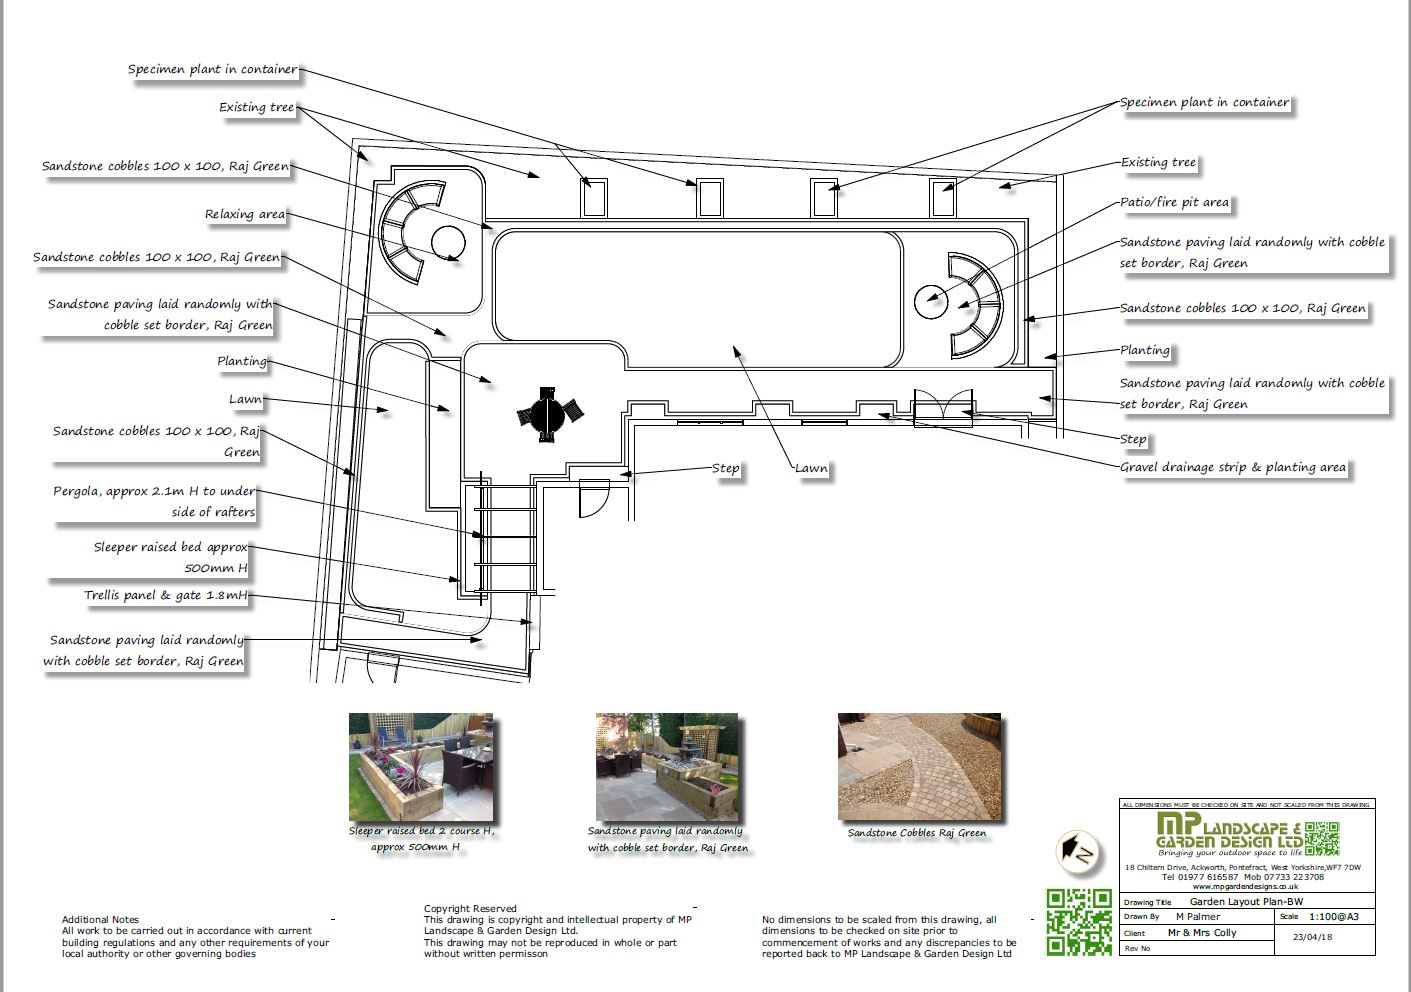 Garden layout plans black and white for a rear garden in Wakefield, West Yorkshire.